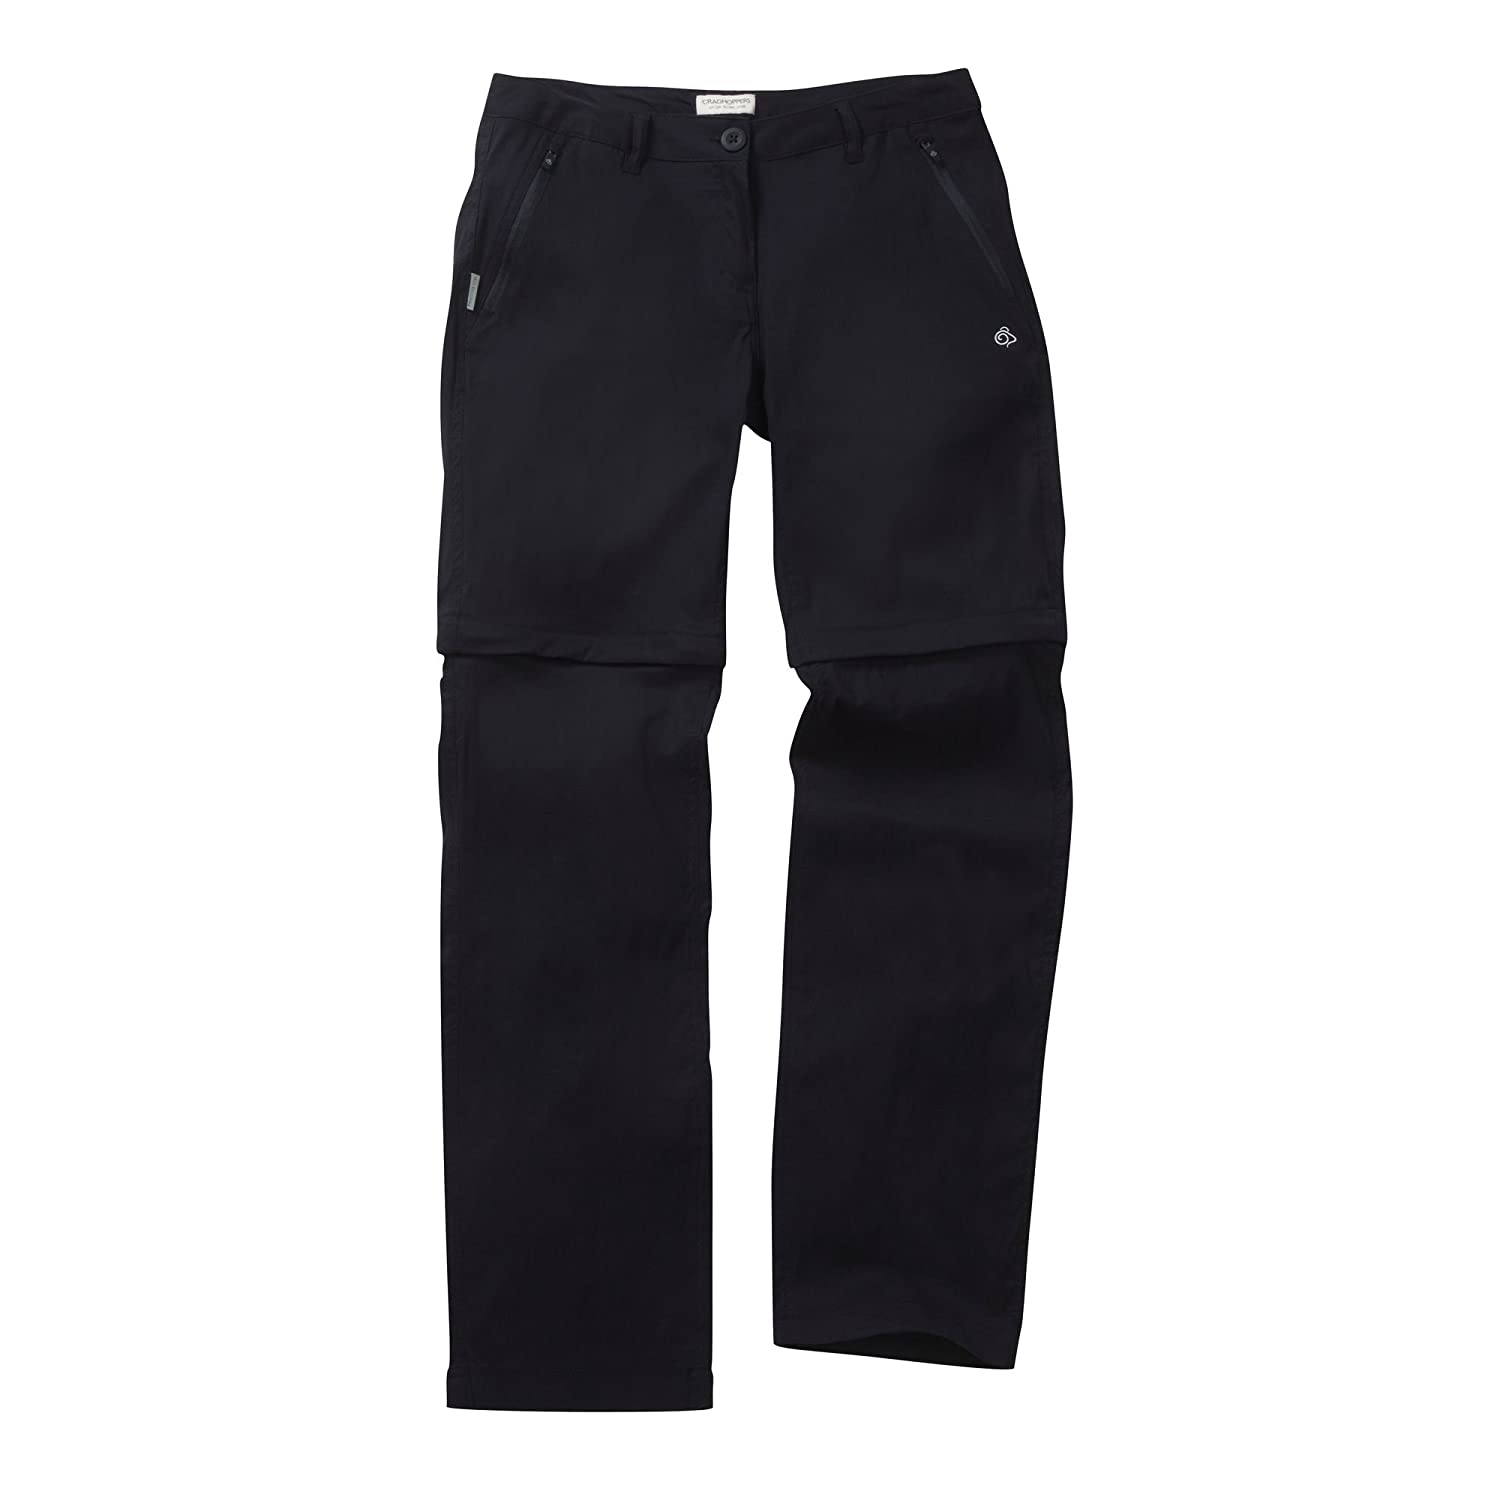 Craghoppers Women's Kiwi Pro Conv TRS Outdoor Trousers Craghoppers Ltd de sporting goods CRANZ CWJ1073S